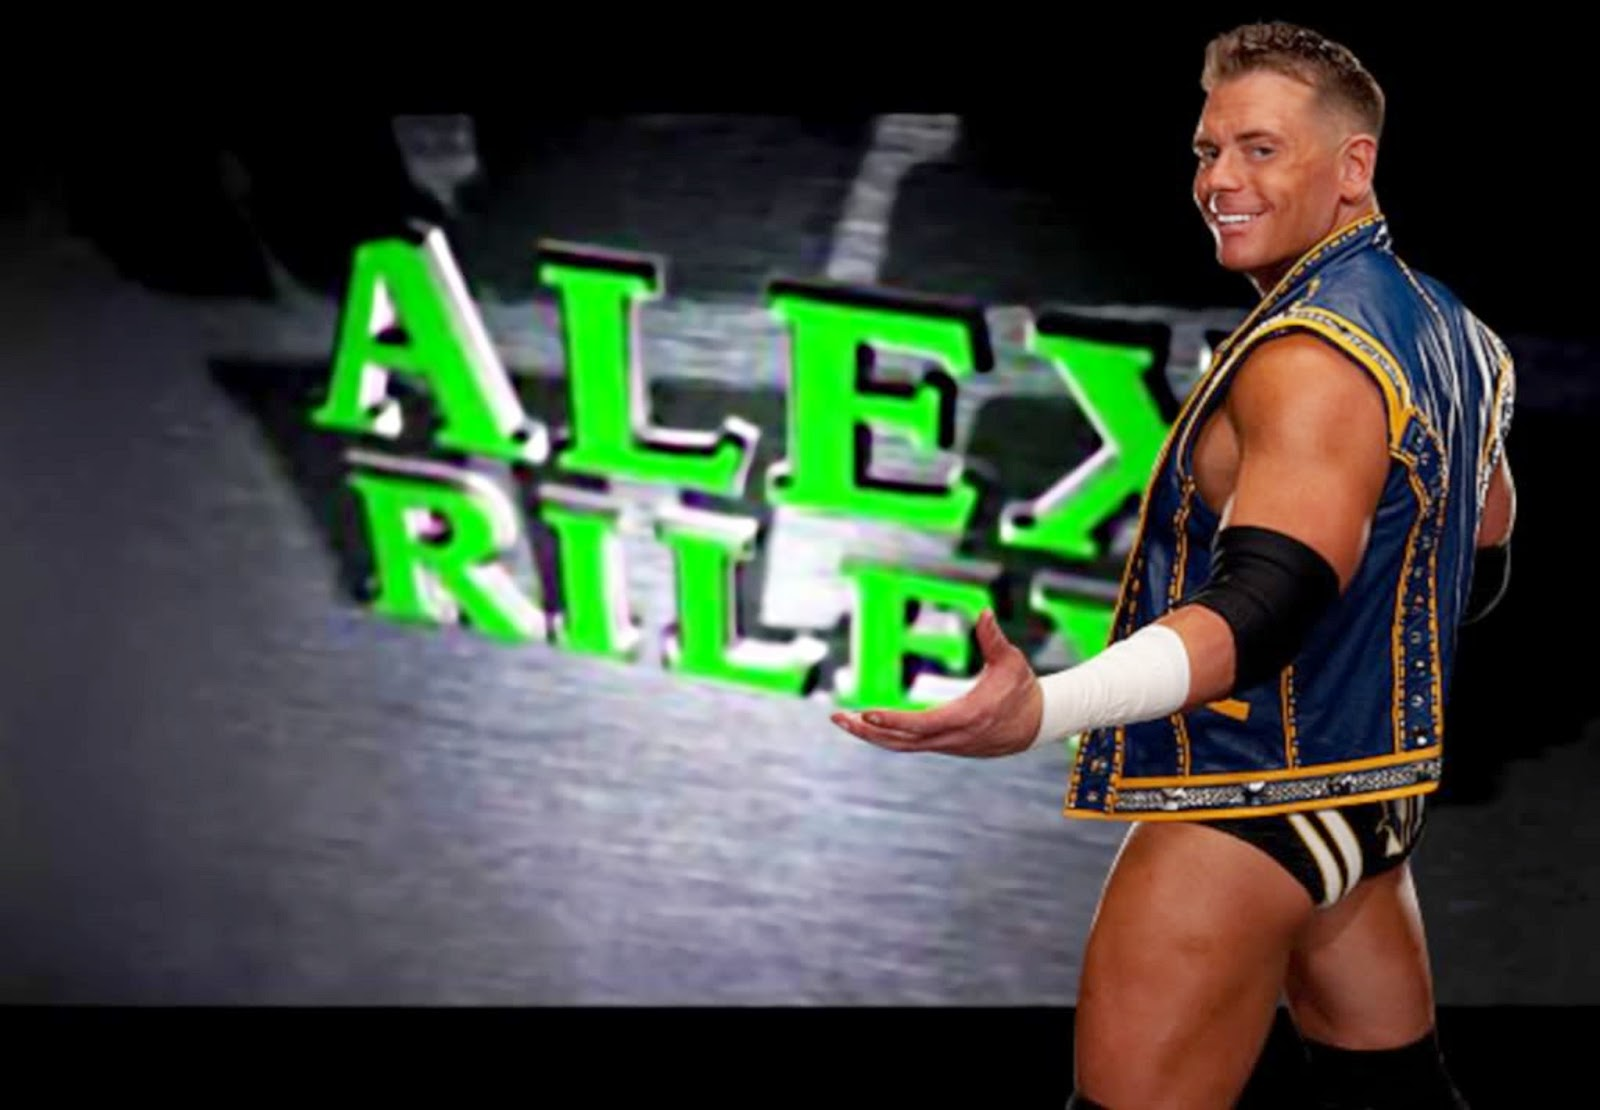 Alex Riley Hd Free Wallpapers